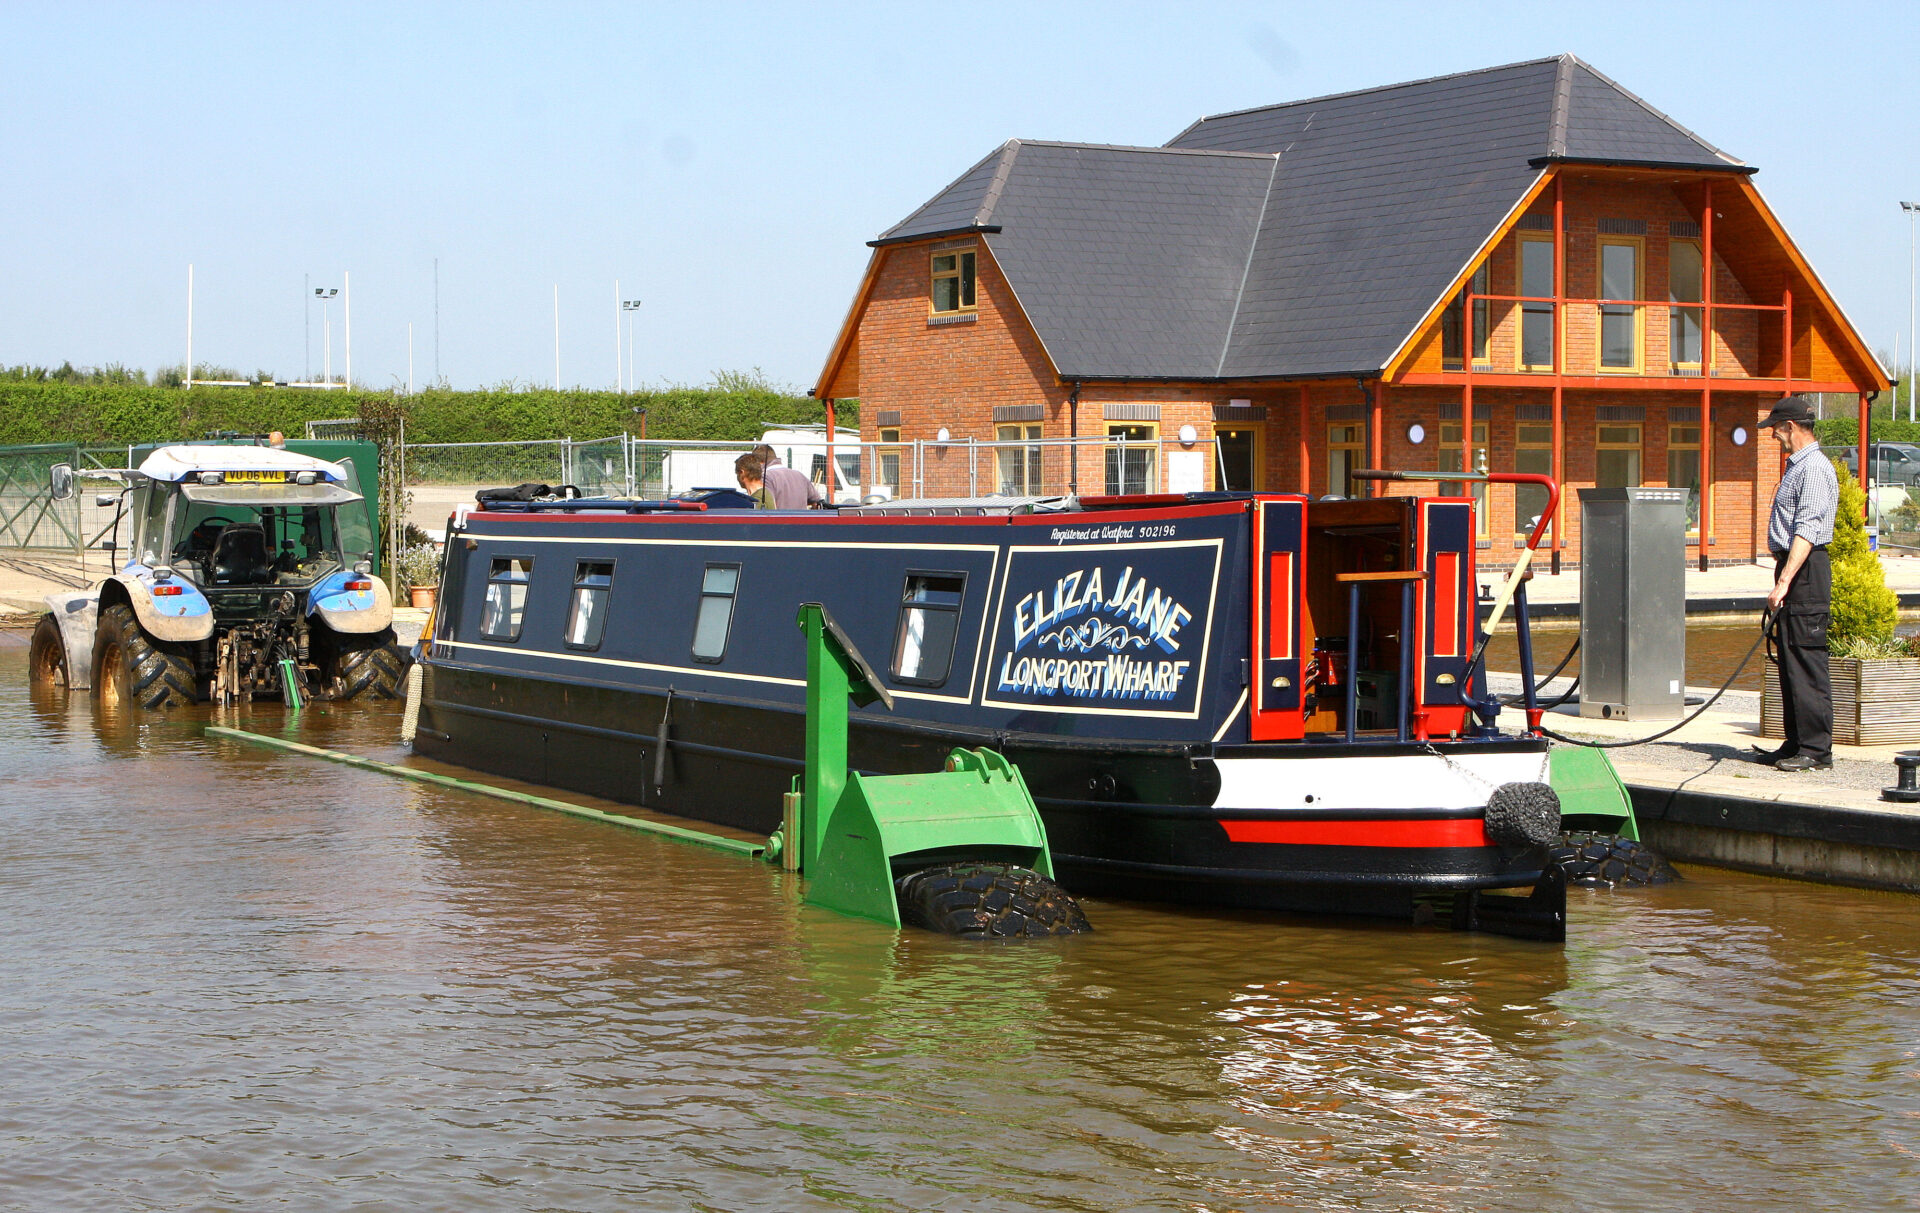 This was our second boat 'Eliza Jane being dropped back in the water by Nick at Droitwich Marina.....